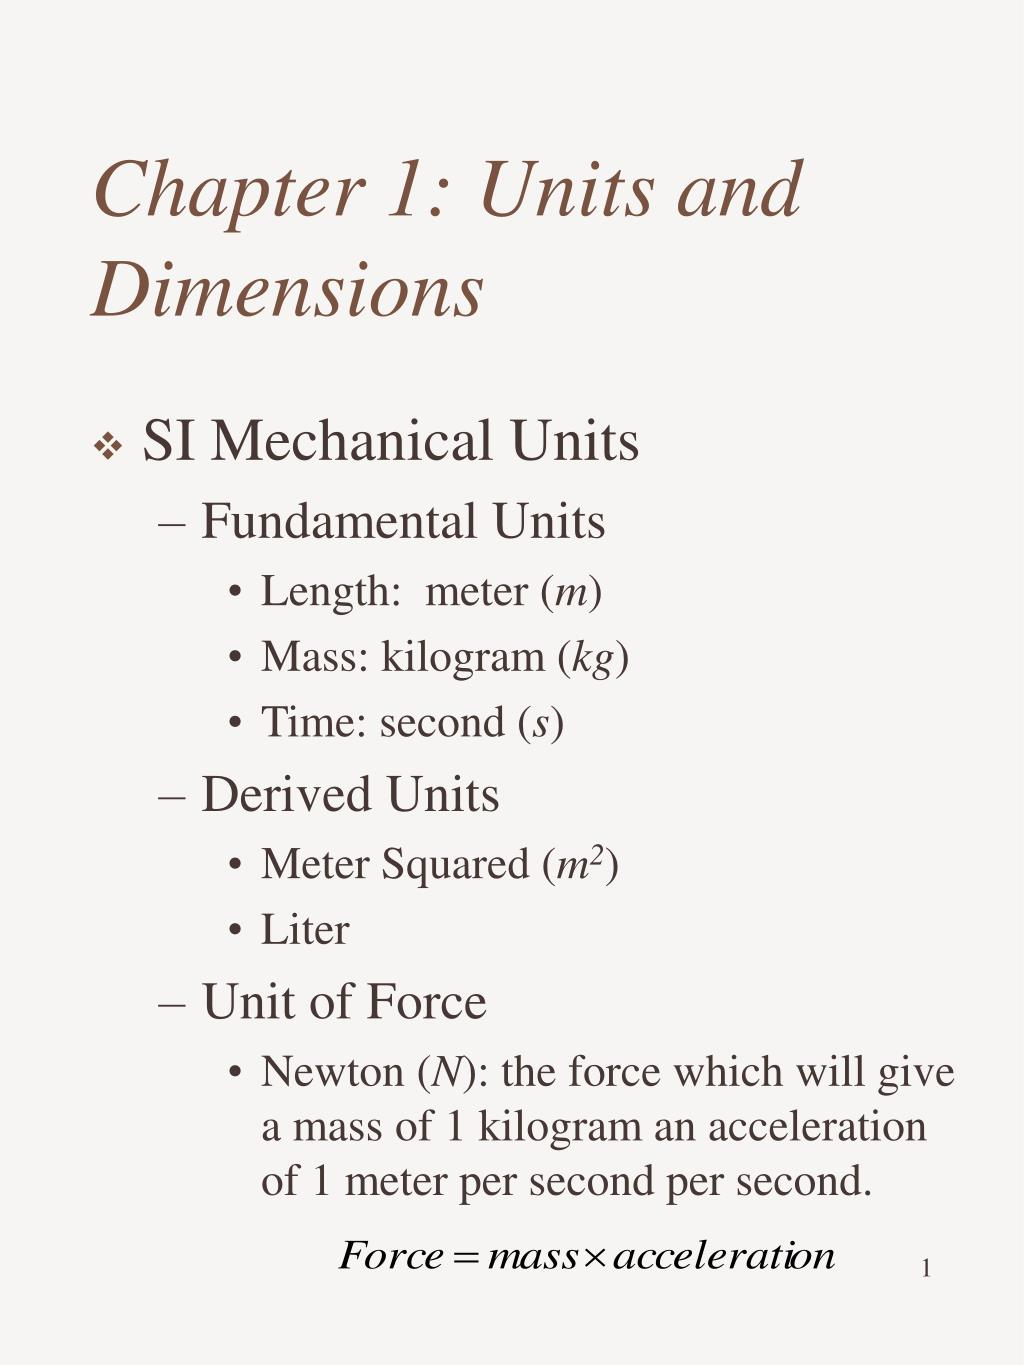 PPT - Chapter 1: Units and Dimensions PowerPoint